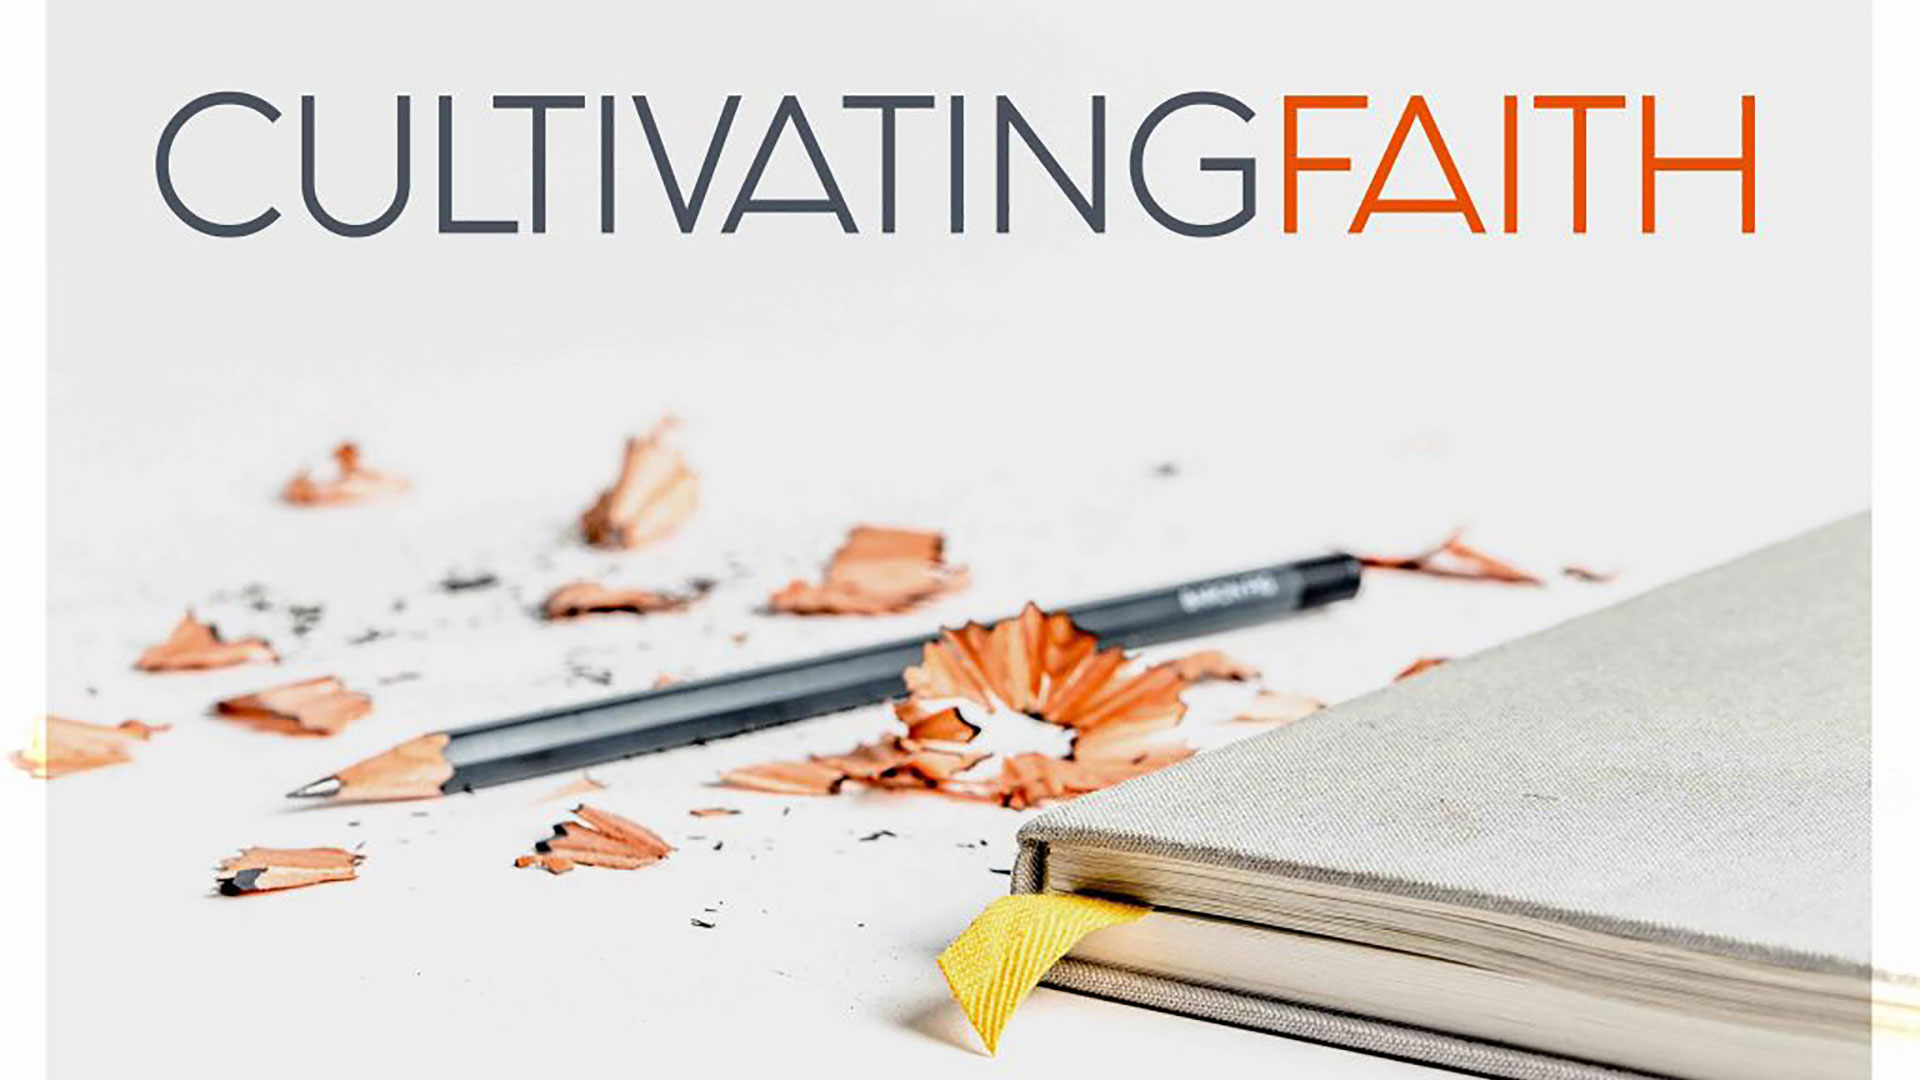 Series: Cultivating Faith